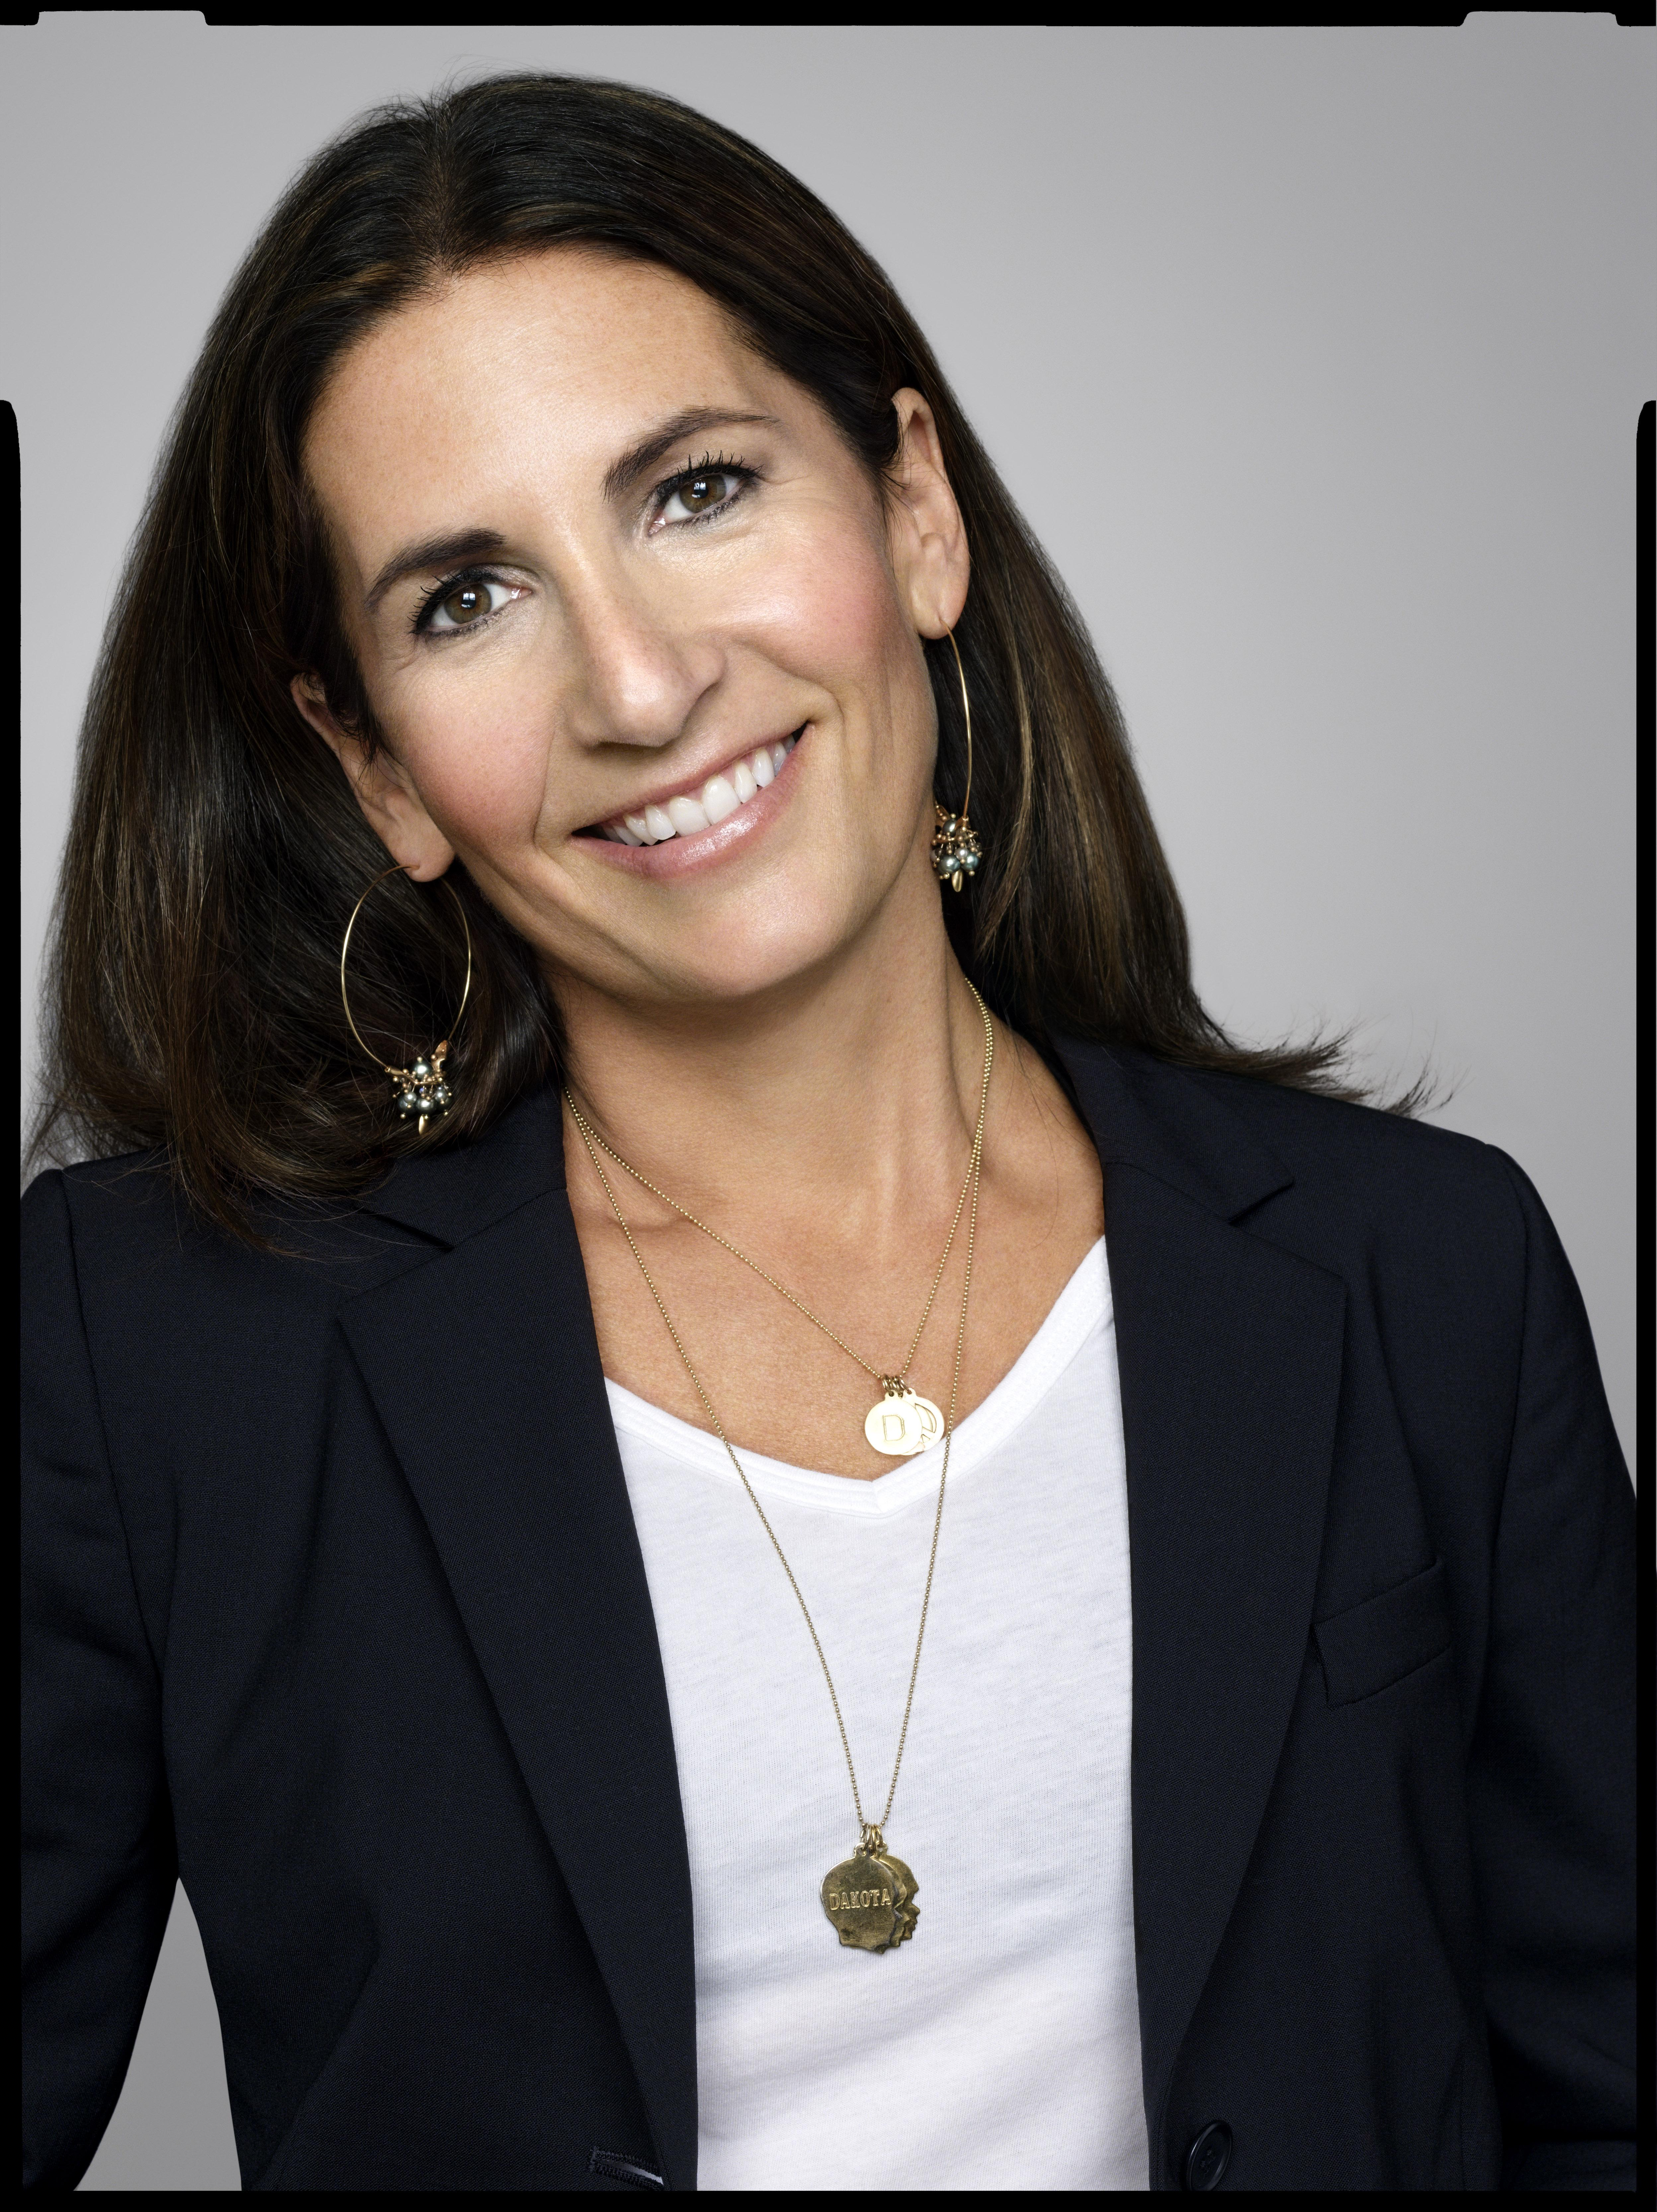 Bobbi Brown, founder and chief creative officer of Bobbi Brown Cosmetics